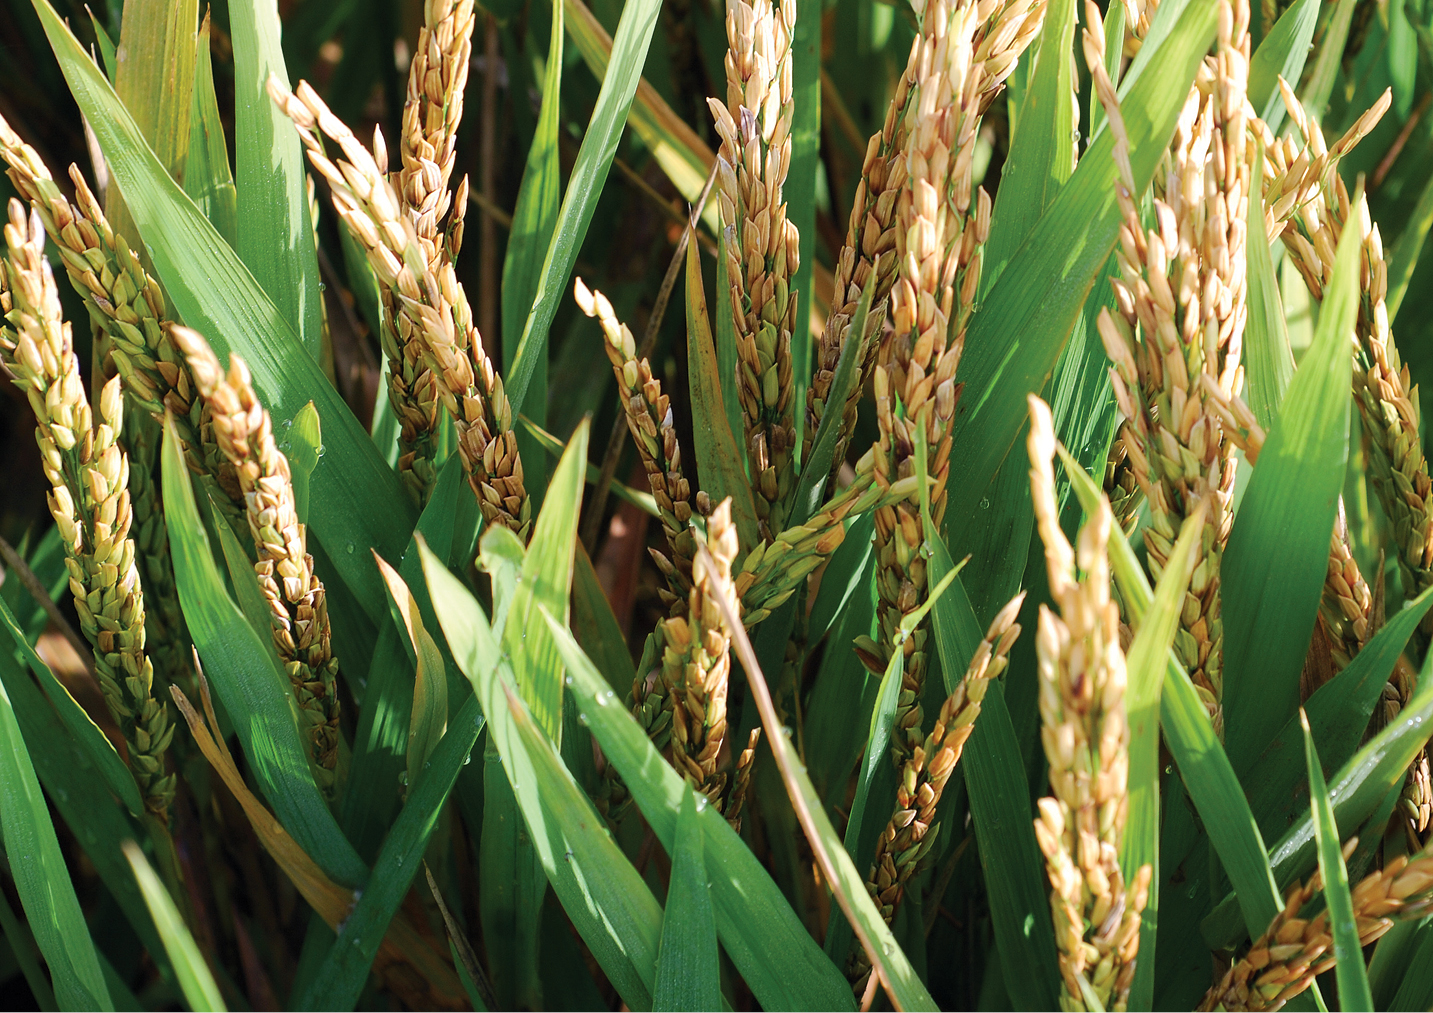 Bacterial Panicle Blight An Emerging Rice Disease